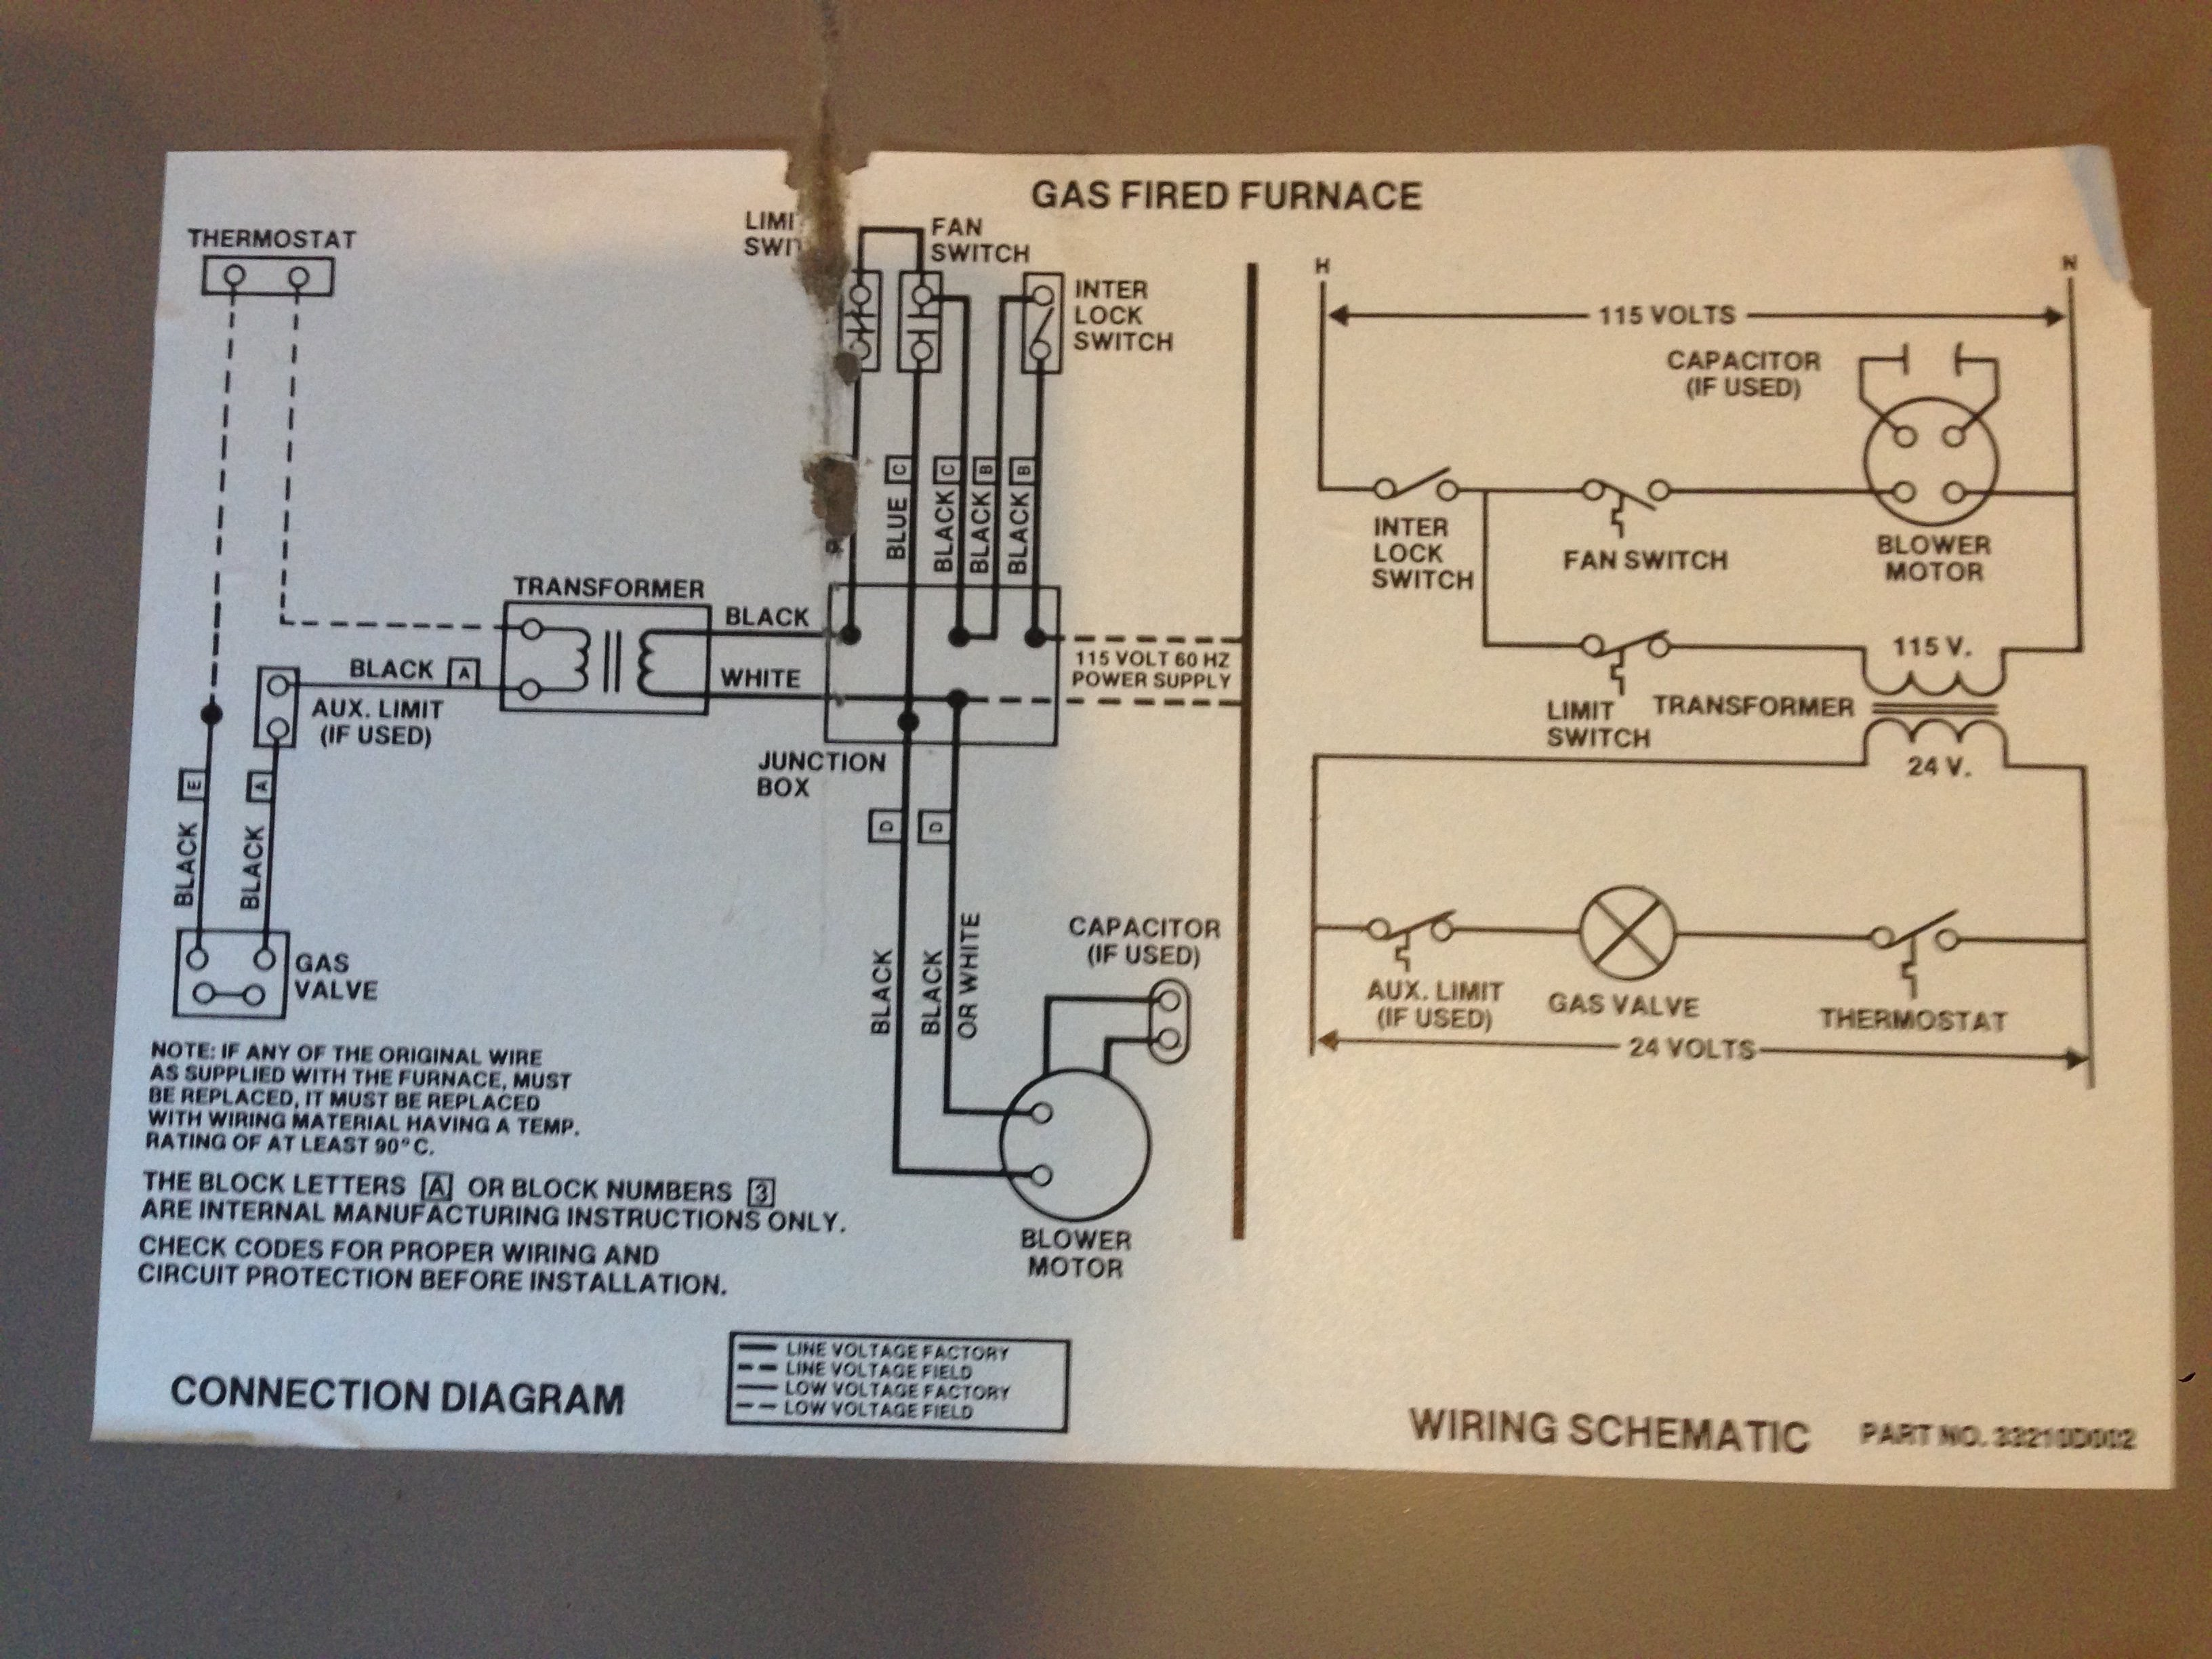 old lennox gas furnace wiring diagram i'm looking for the wiring instructions for a honeywell vr800a 1012. wires on my furnace need to ... old carrier gas furnace wiring diagram #4